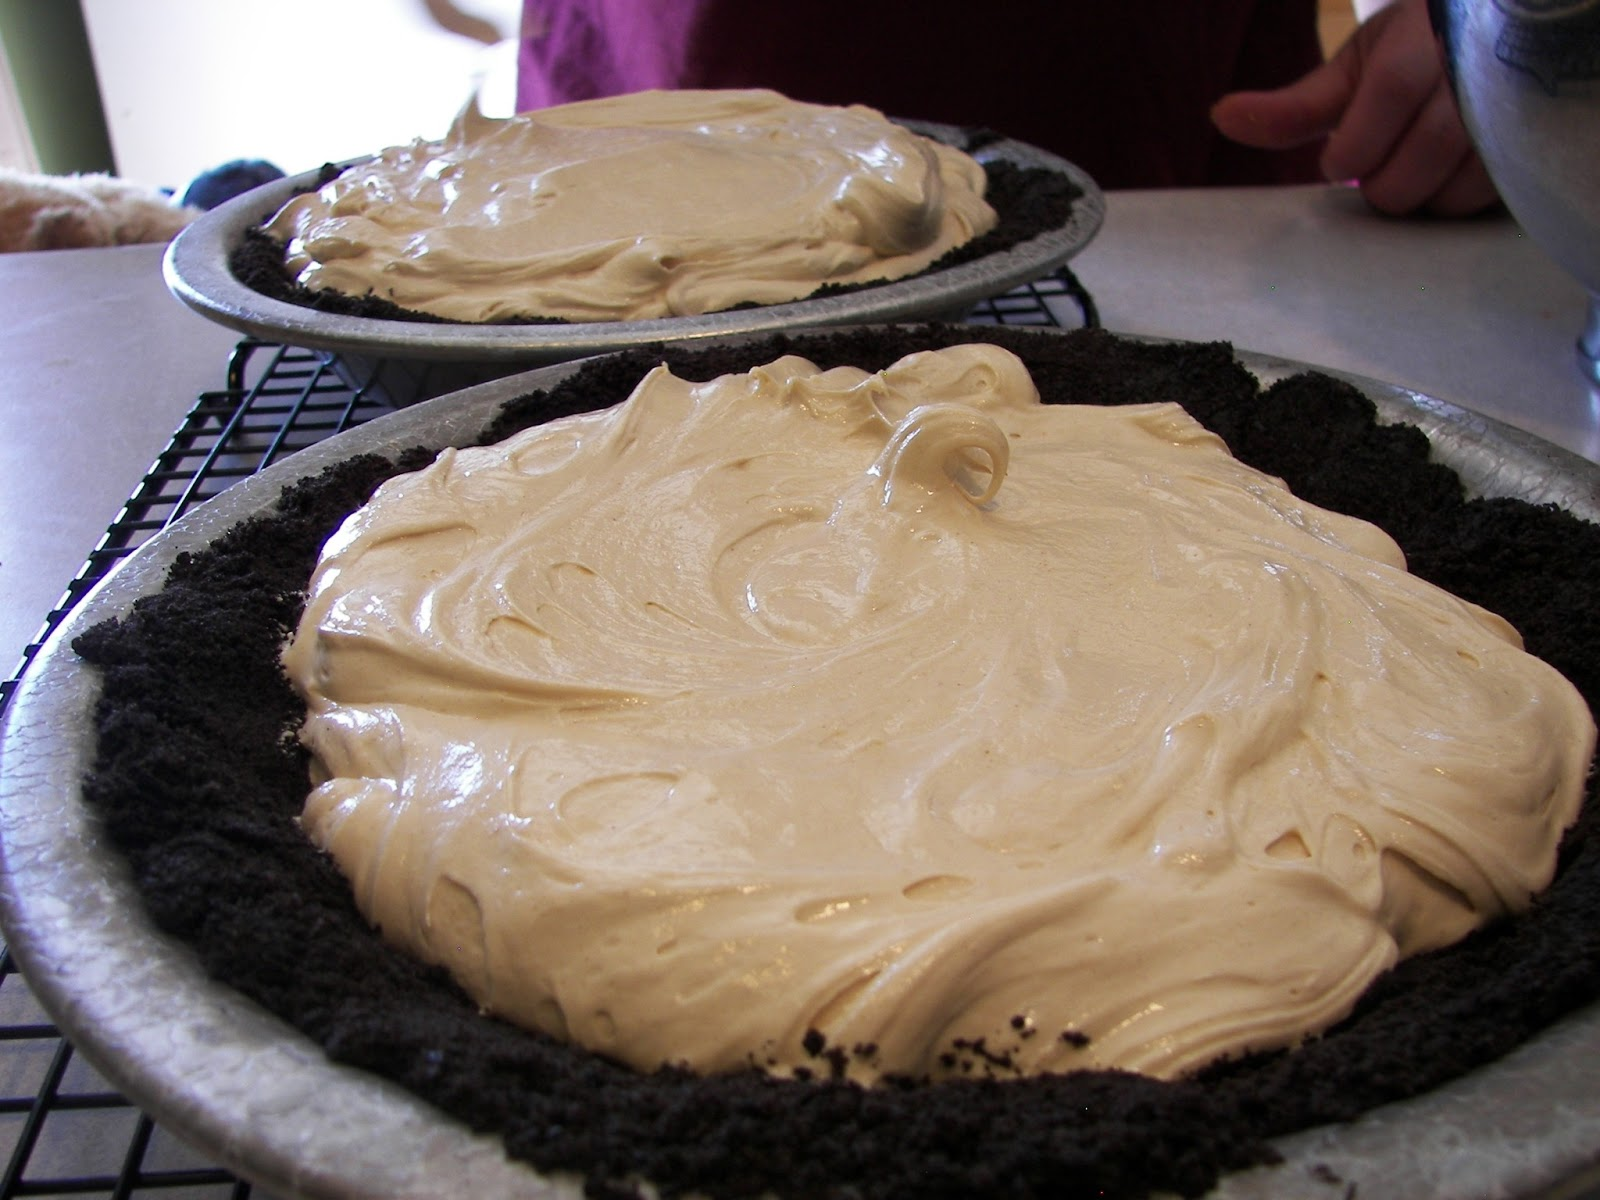 Pie Per Week!: A Pie Per Week: Chocolate Peanut Butter Pie